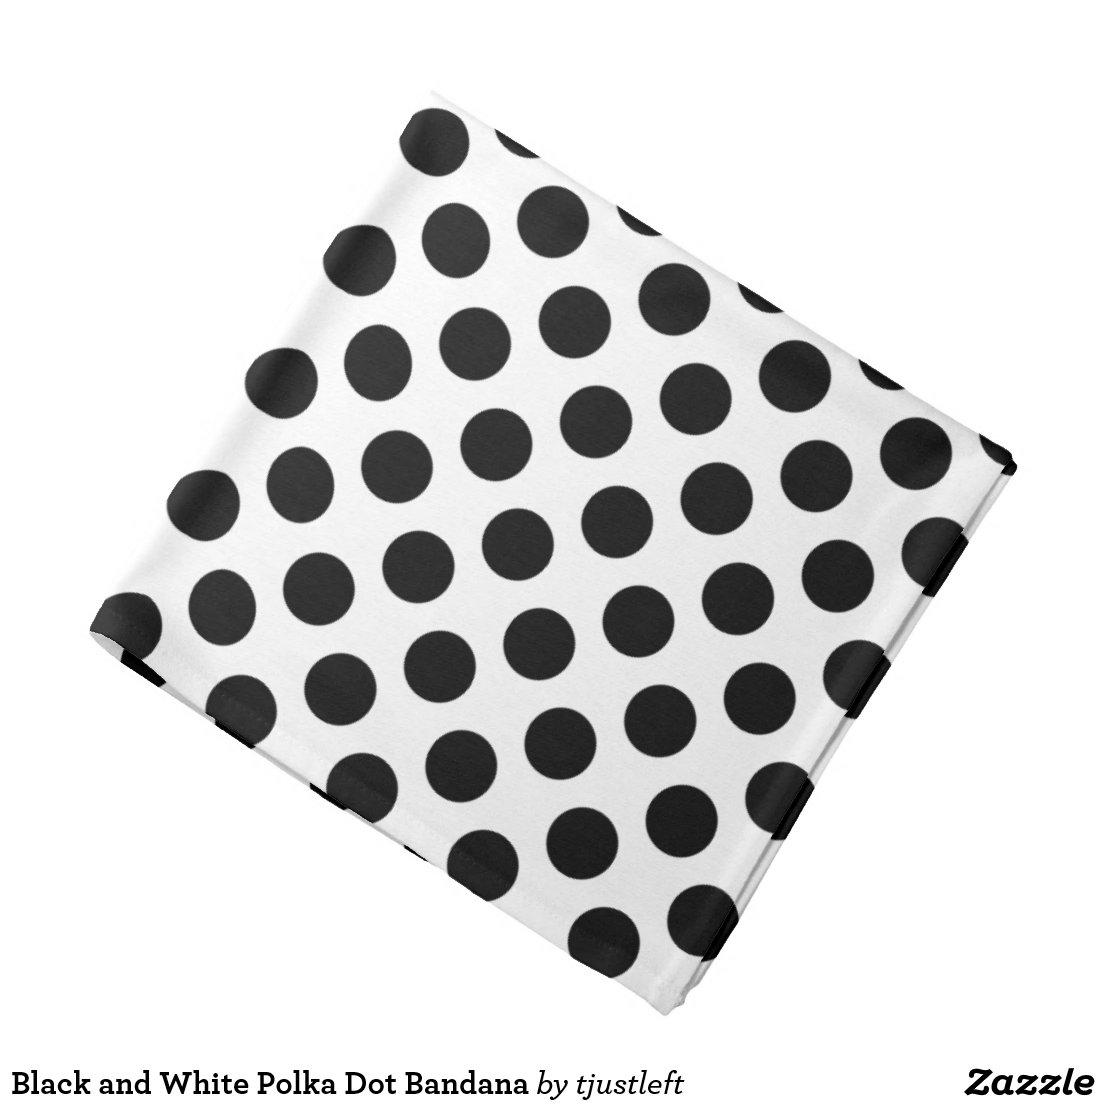 Black and White Polka Dot Bandana